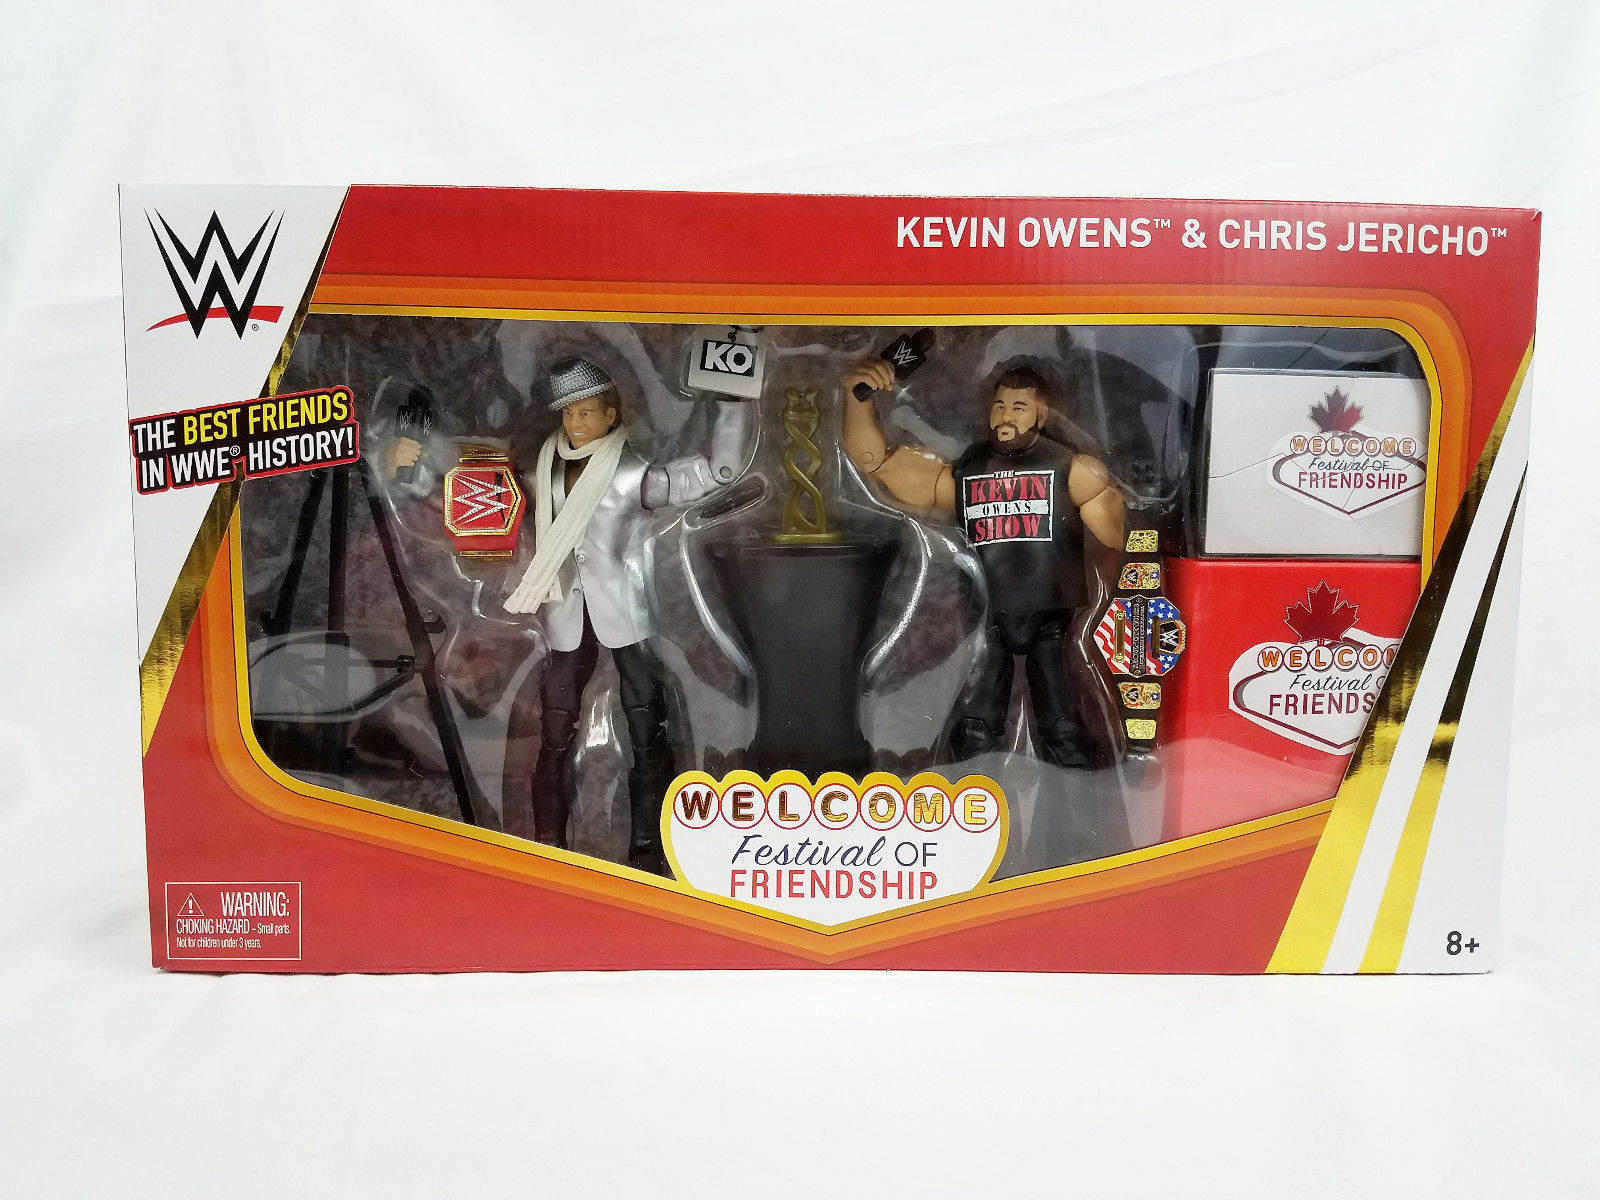 WWE WWE WWE EPIC MOMENTS CHRIS JERICHO KEVIN OWENS SERIES ELITE WRESTLING ACTION FIGURE 9eabf7